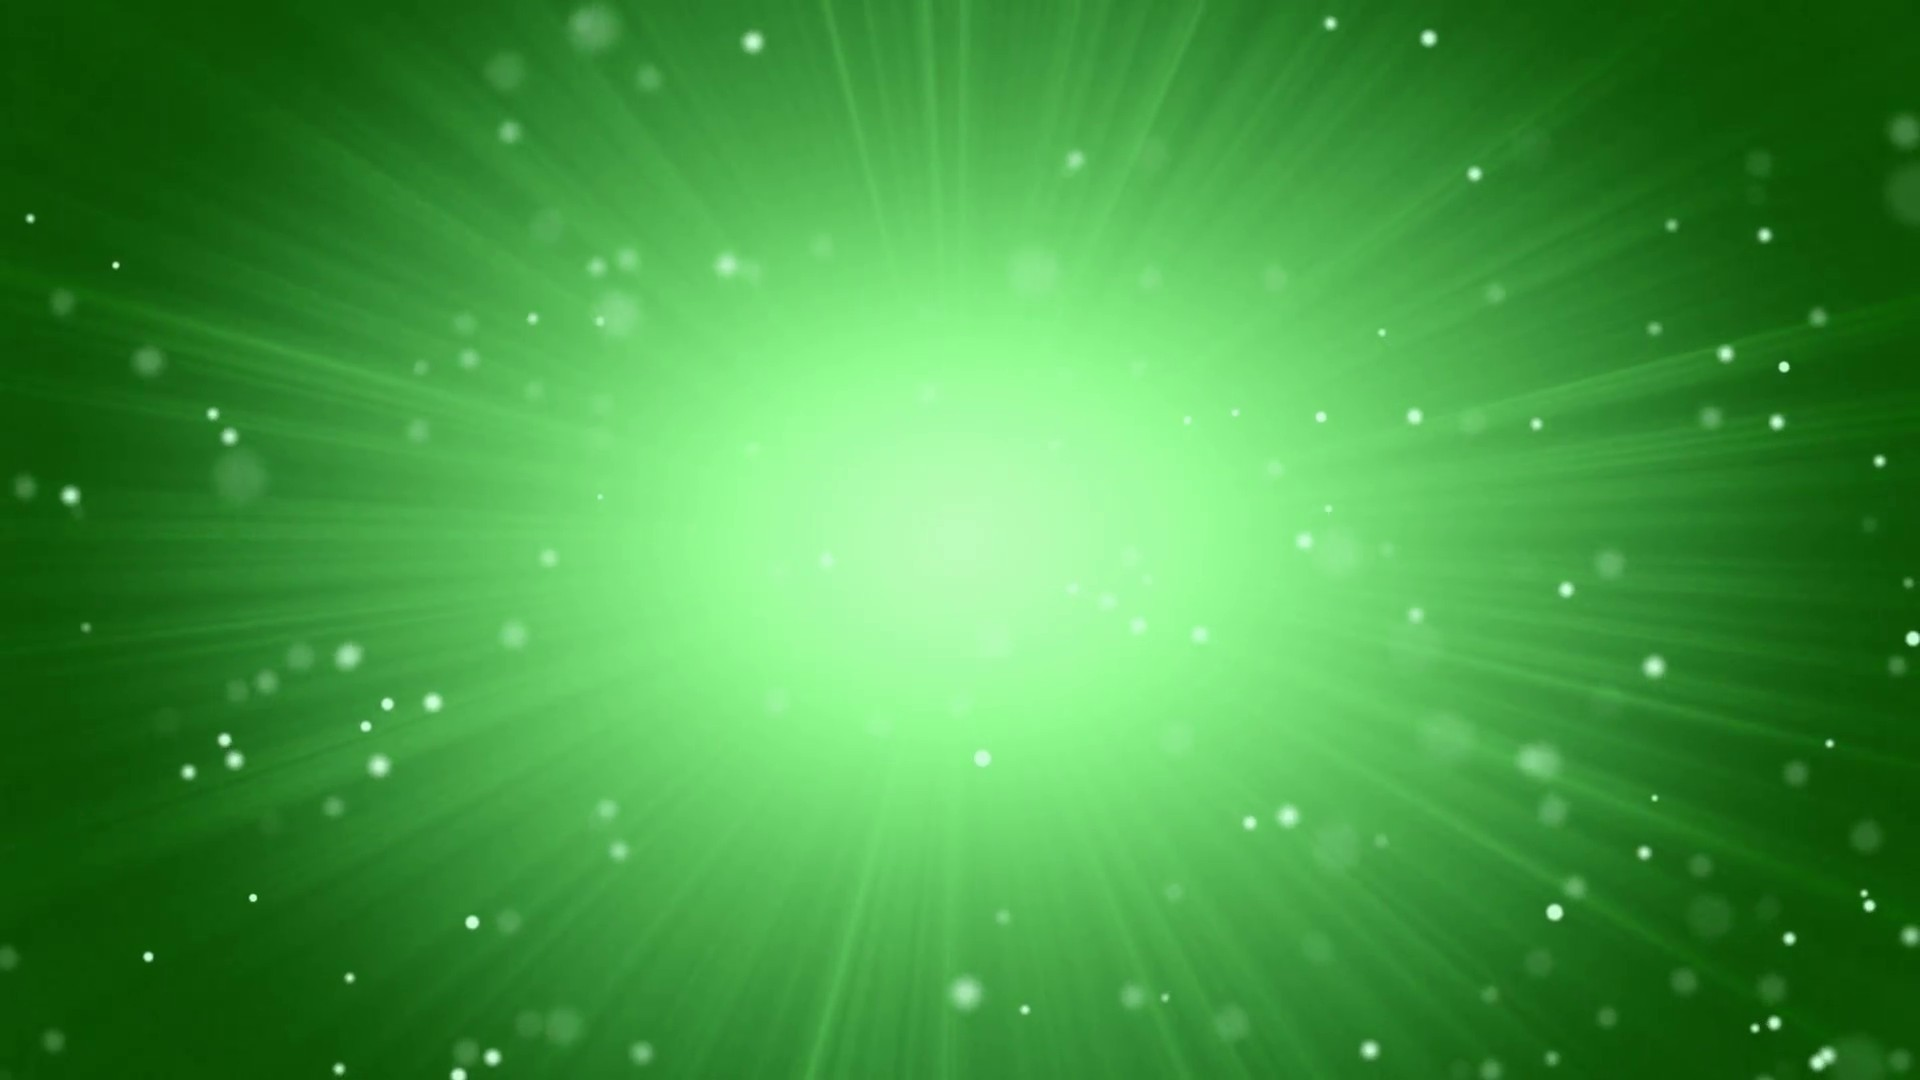 background hd 1920x1080 green 72 images